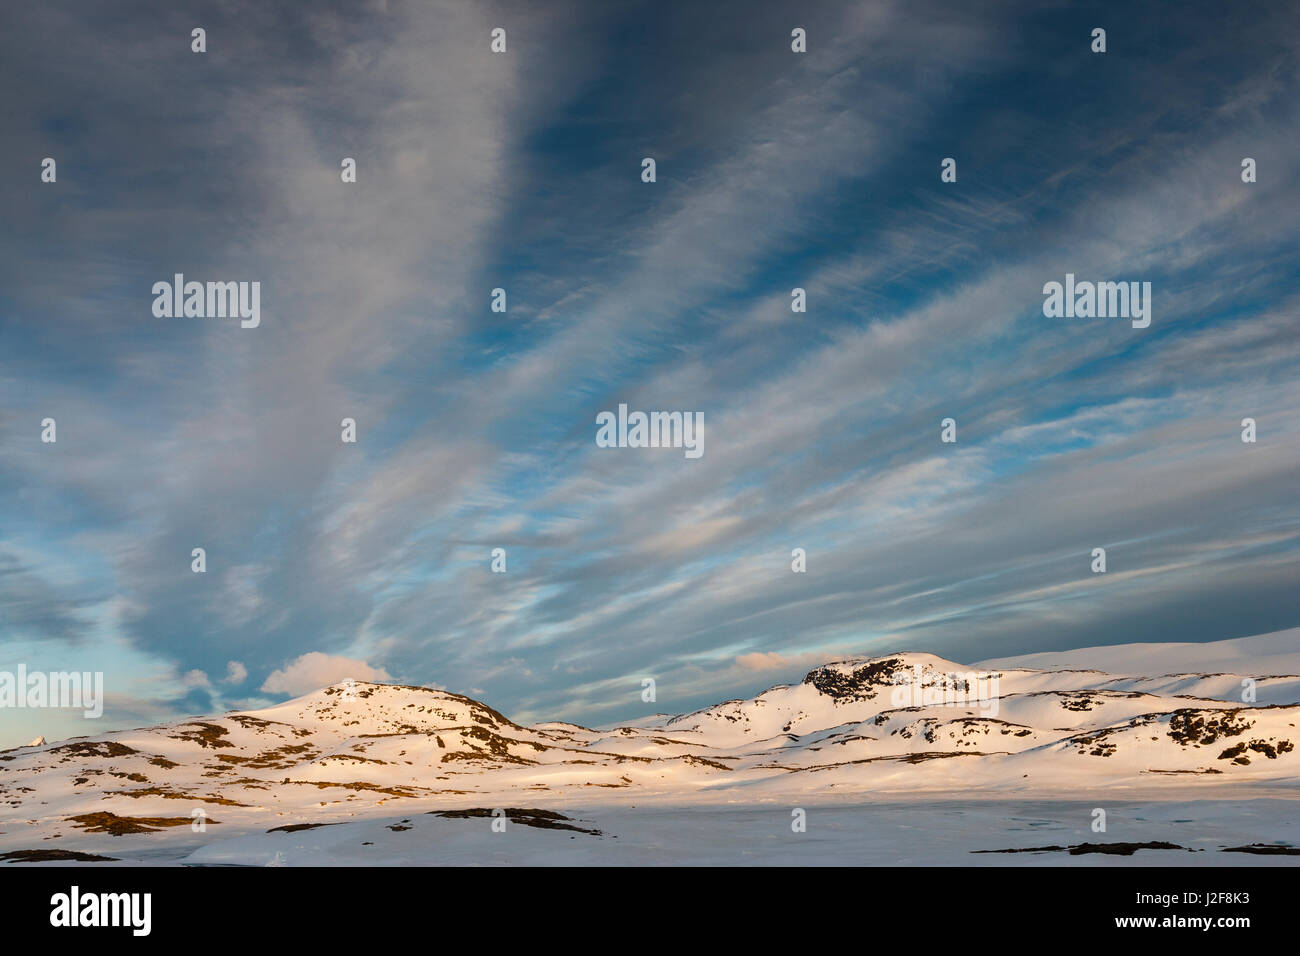 Mountains of Jotunheimen in evening light under a sky with cirrus clouds - Stock Image